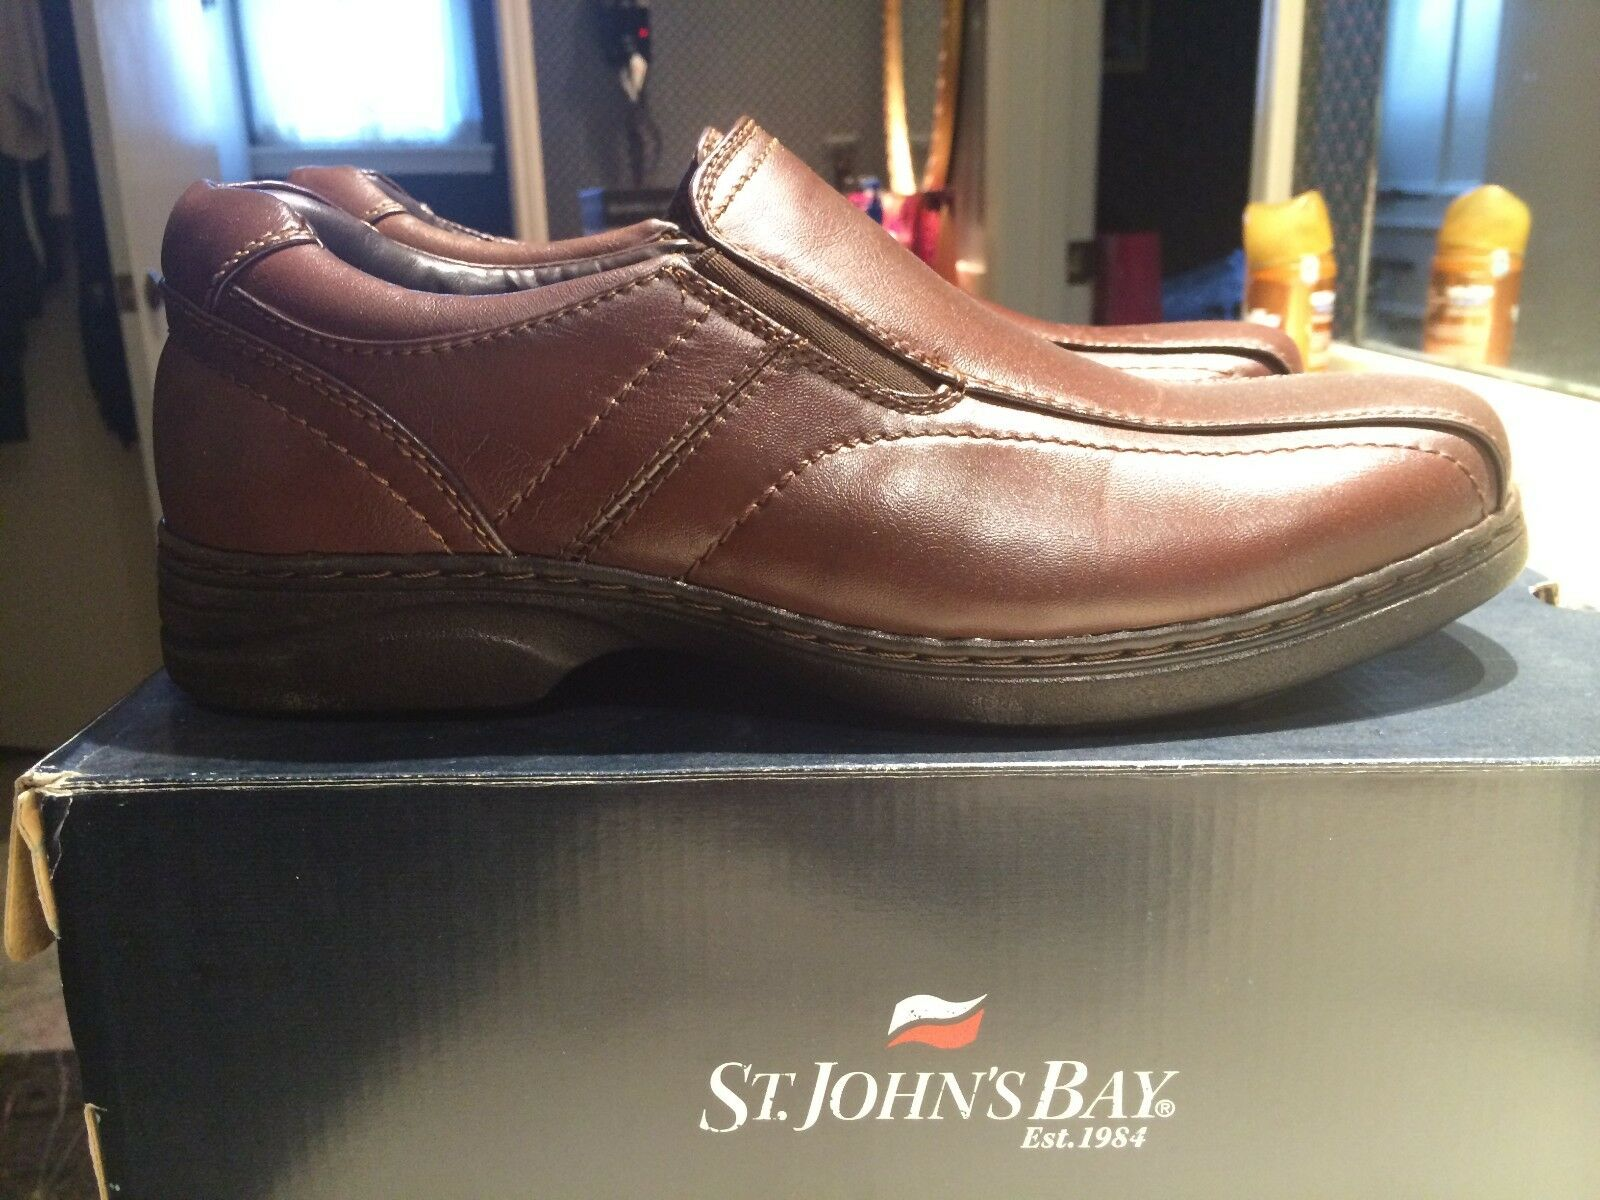 St. John's Bay mens brown leather shoes